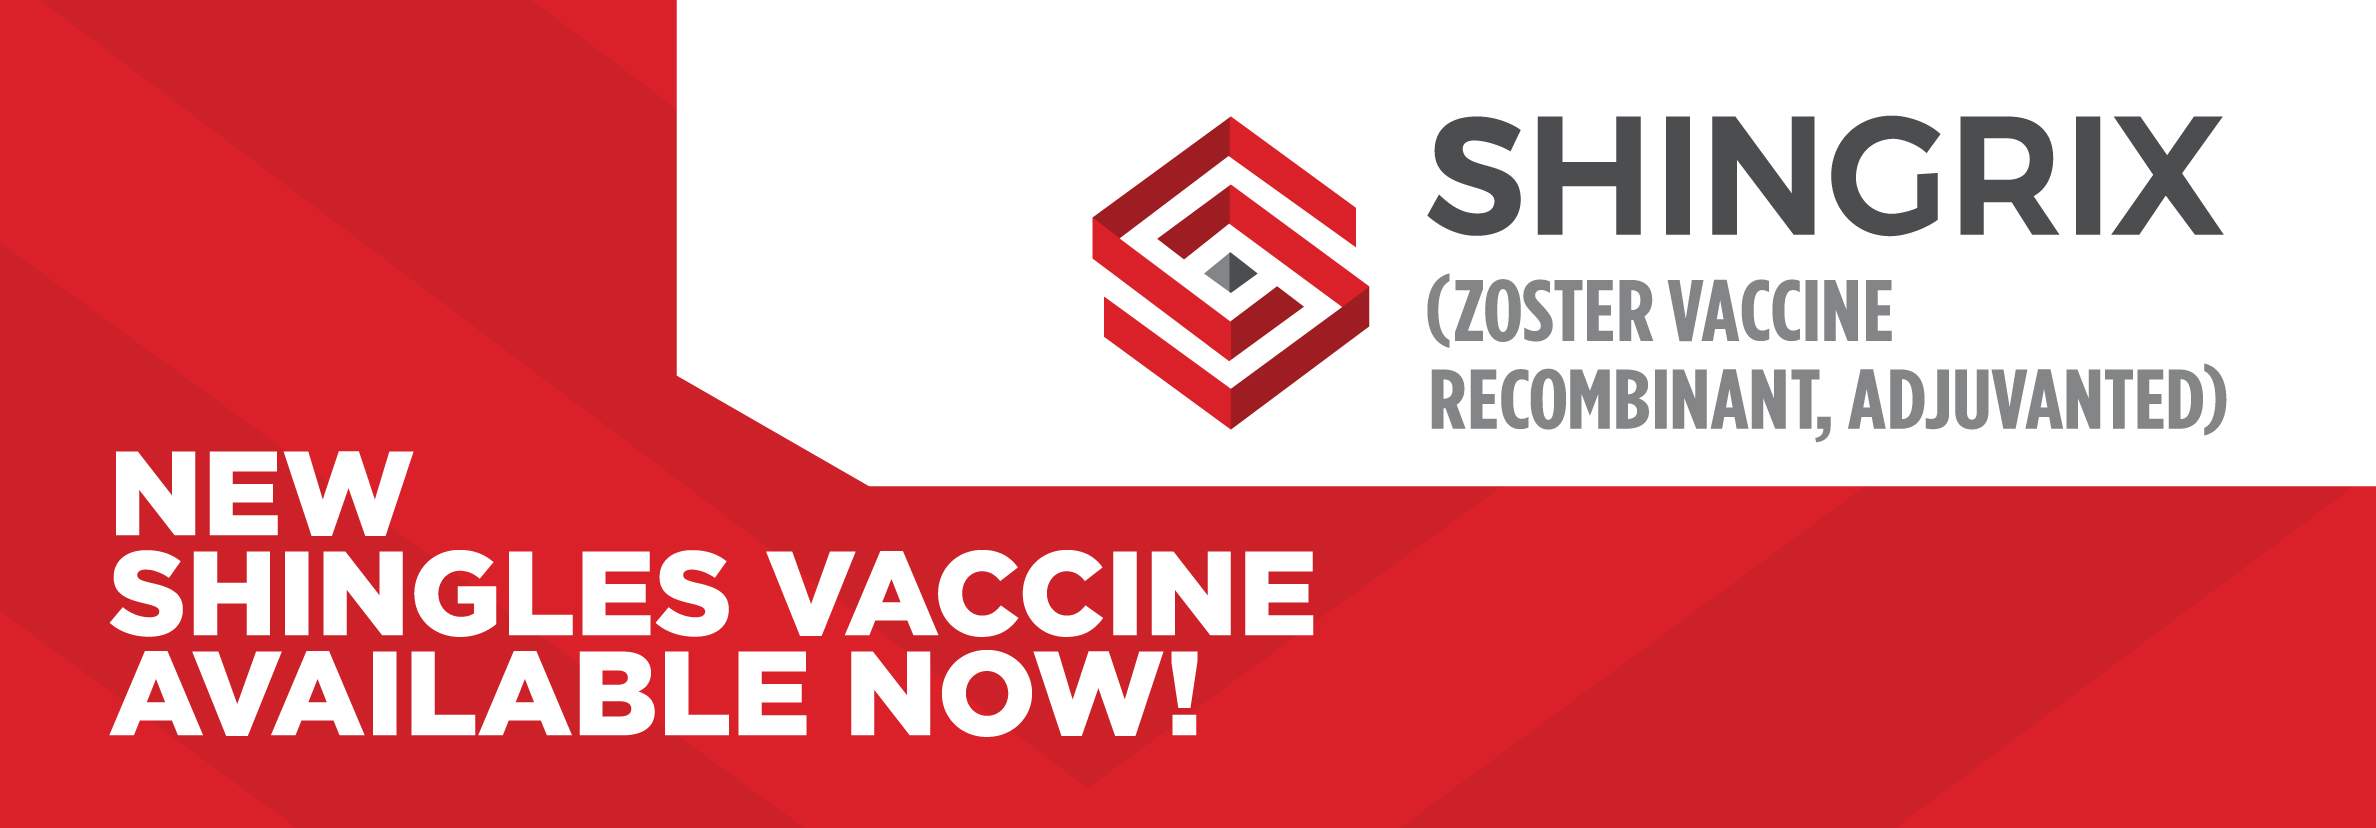 Shingrix is a vaccine that helps protect adults against shingles (also called Herpes Zoster)  As we age, the risk of getting shingles increases.  Shingrix is used for Adults 50 years of age and older to help the body build its protection against shingles.